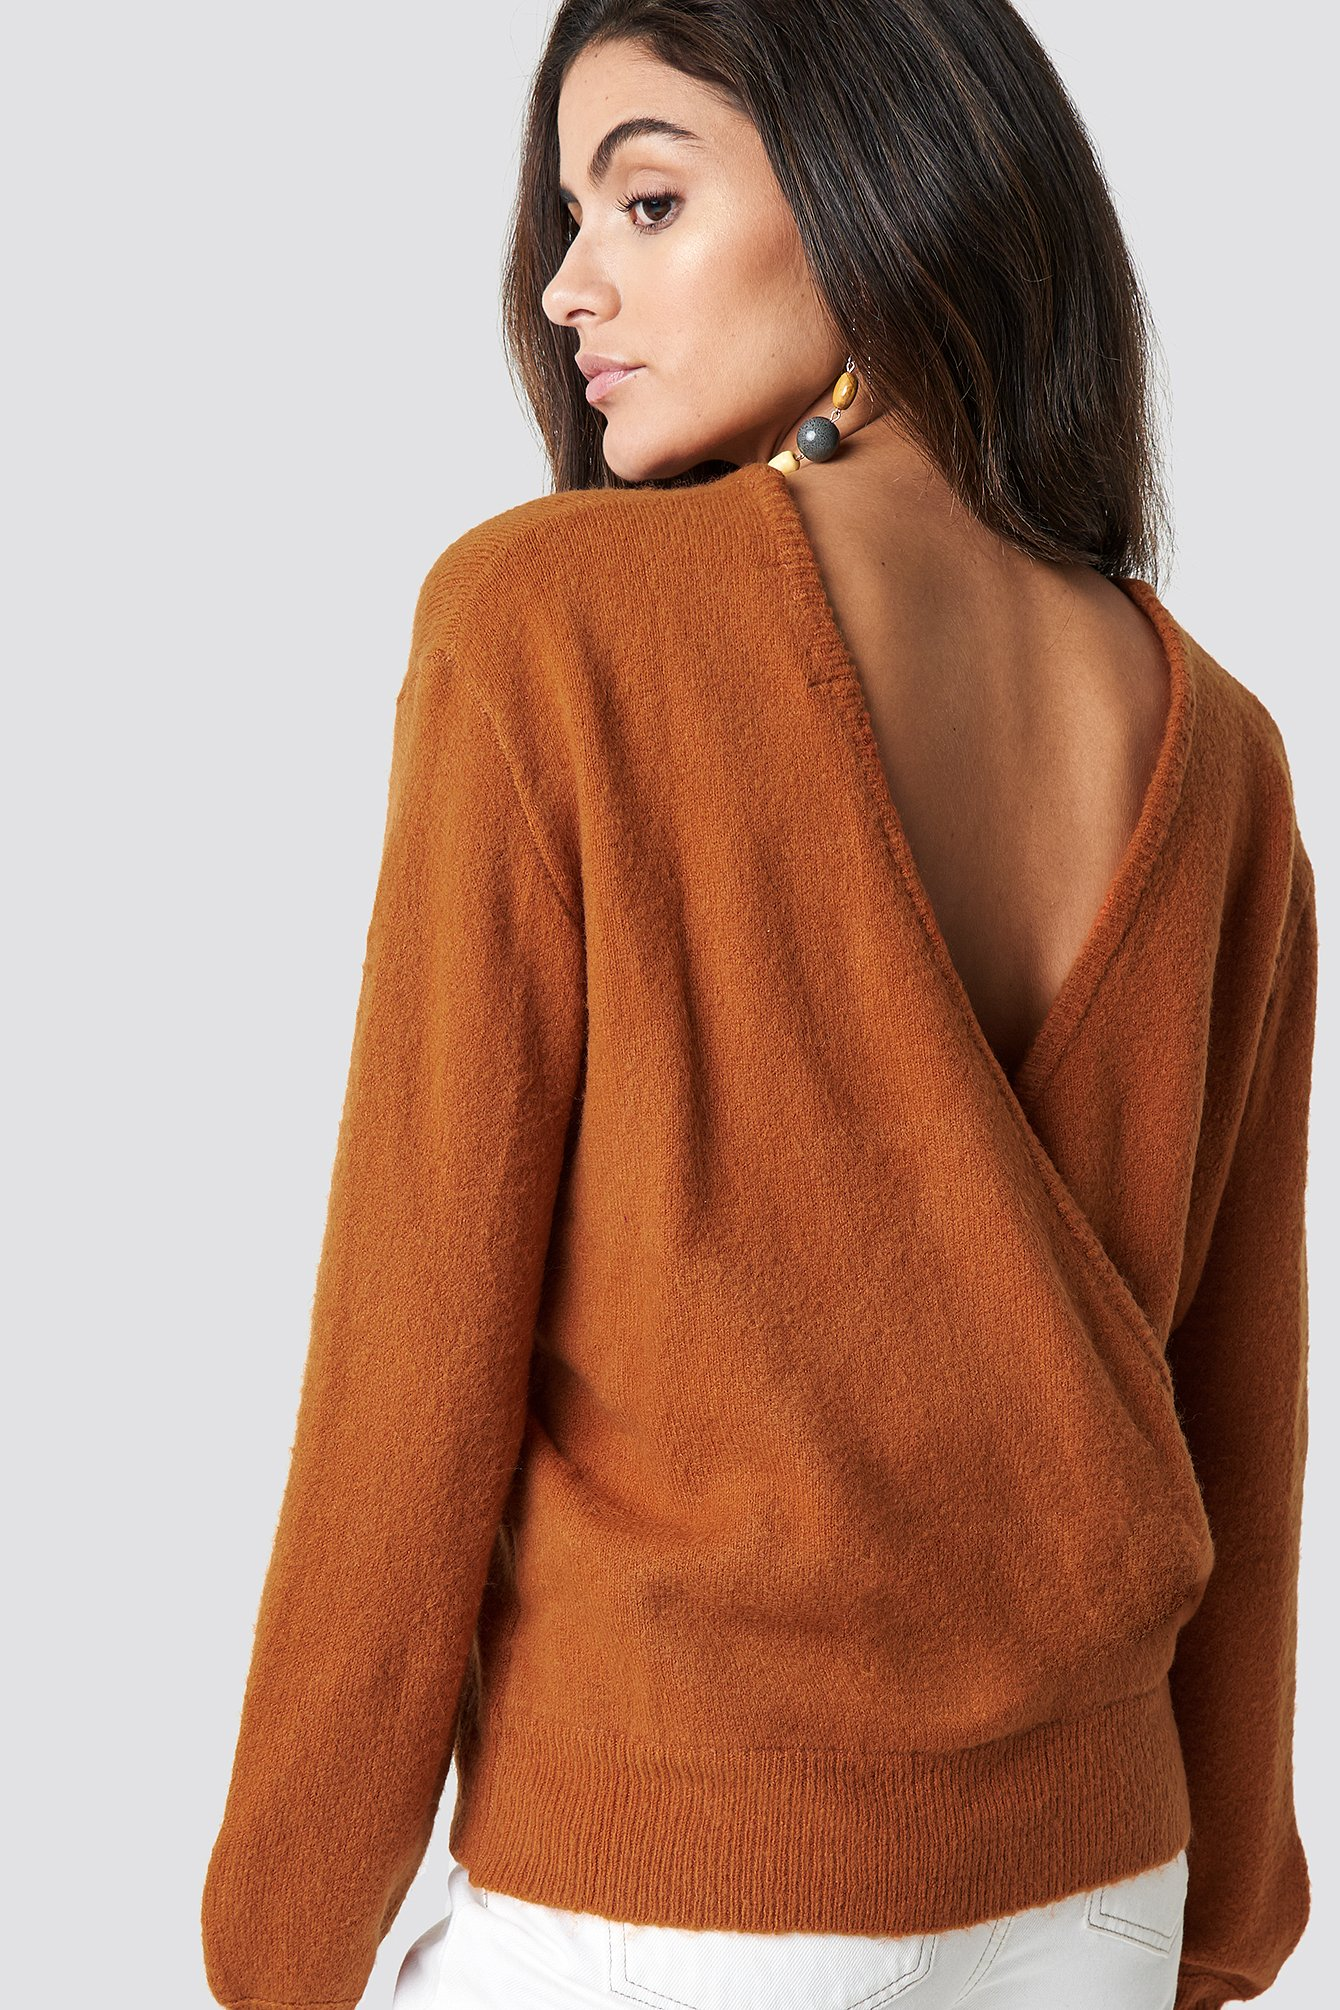 NA-KD Trend Back Overlap Knitted Sweater - Orange | Bekleidung > Sweatshirts & -jacken > Sweatshirts | NA-KD Trend